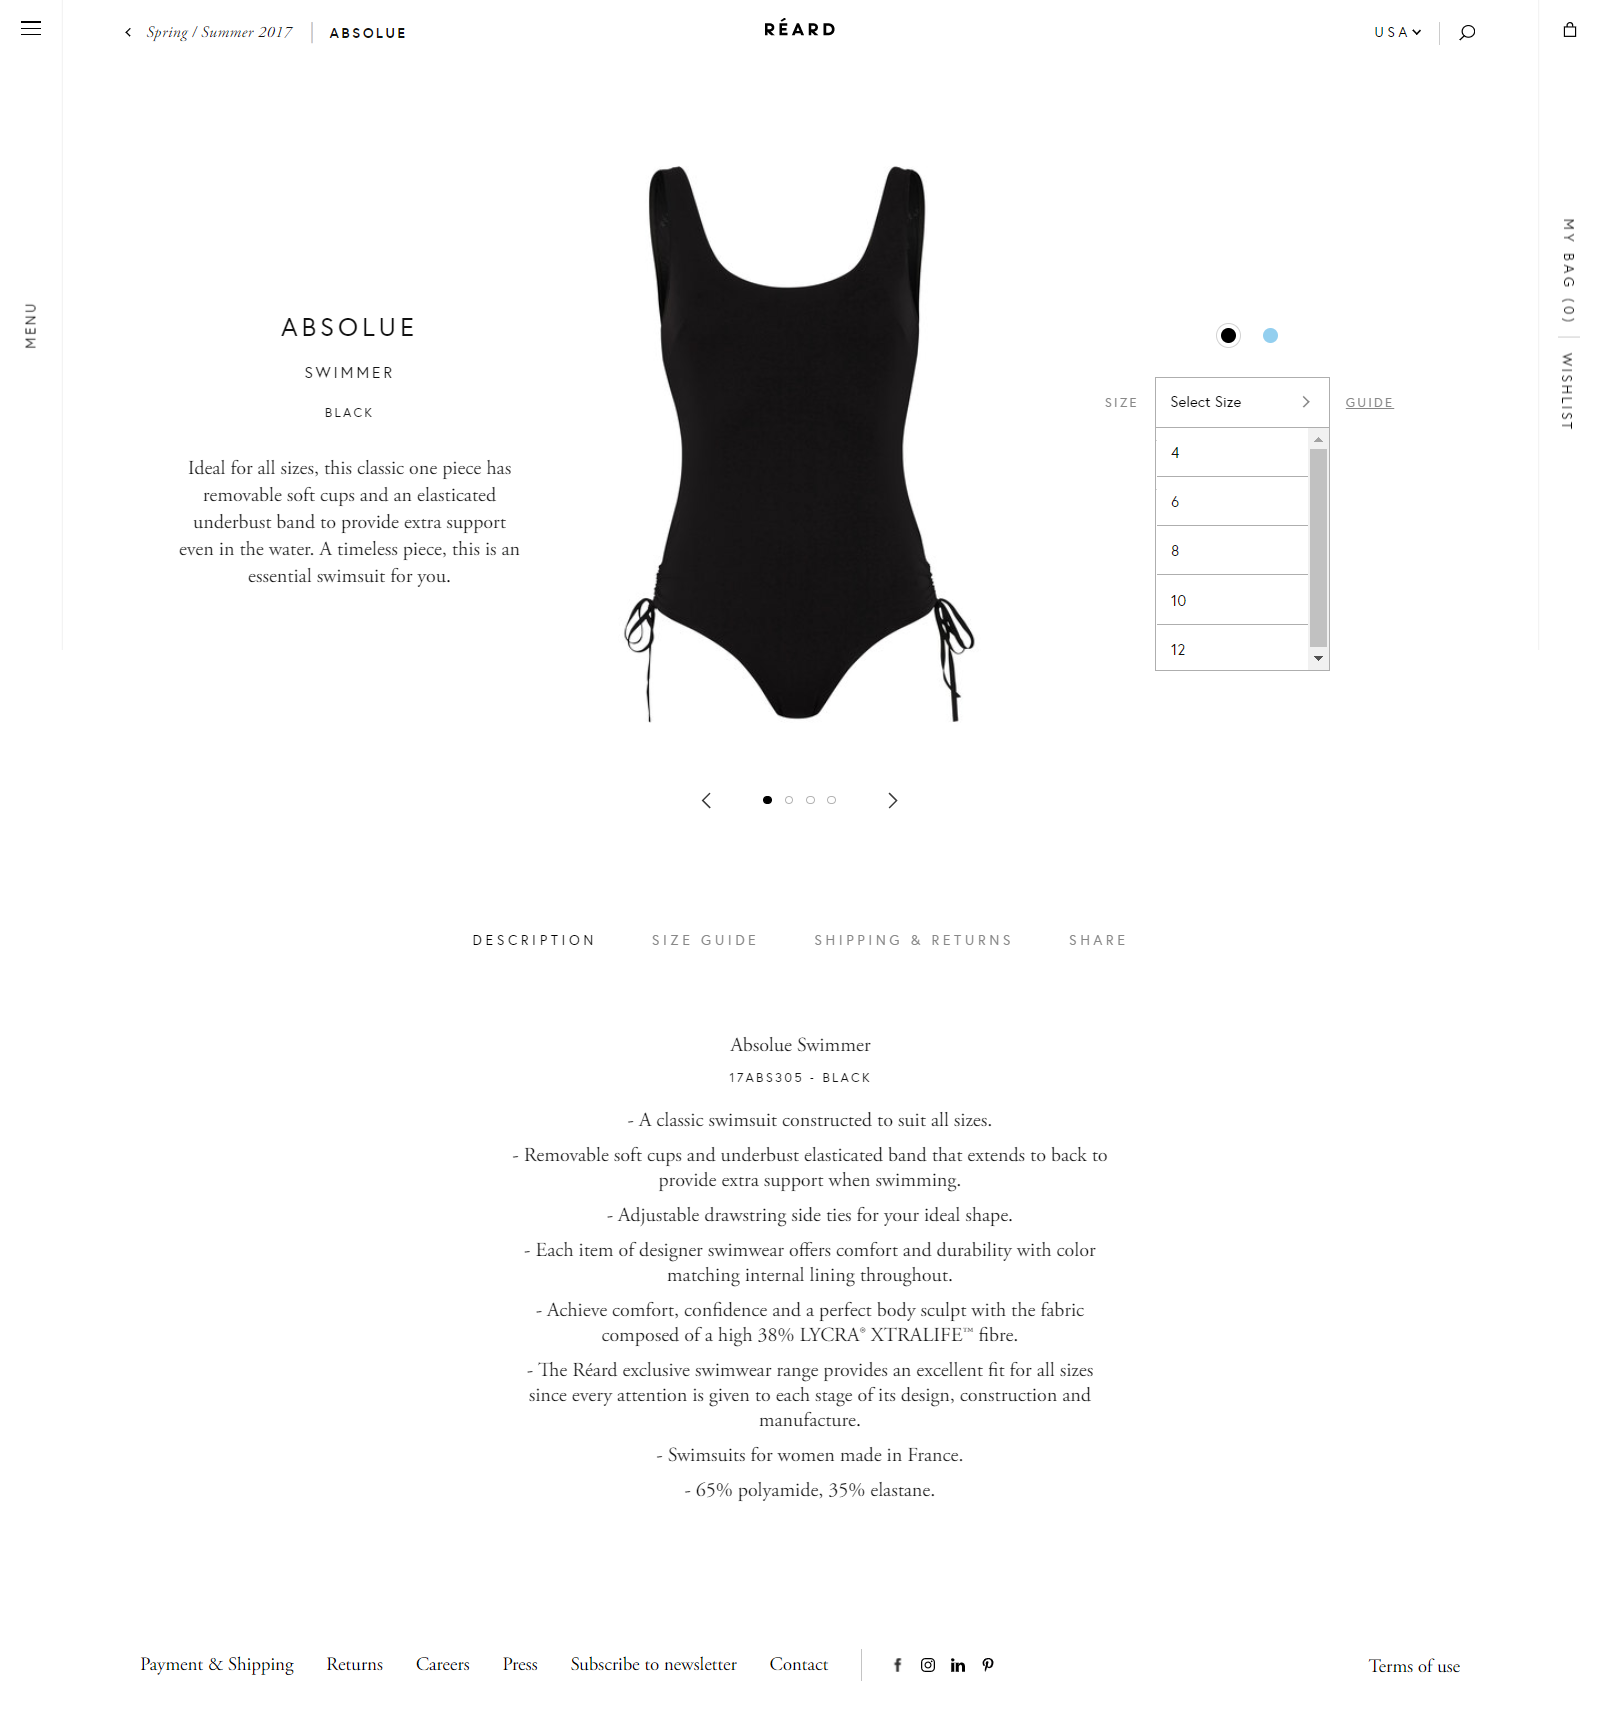 Reard uses minimal design on product page template